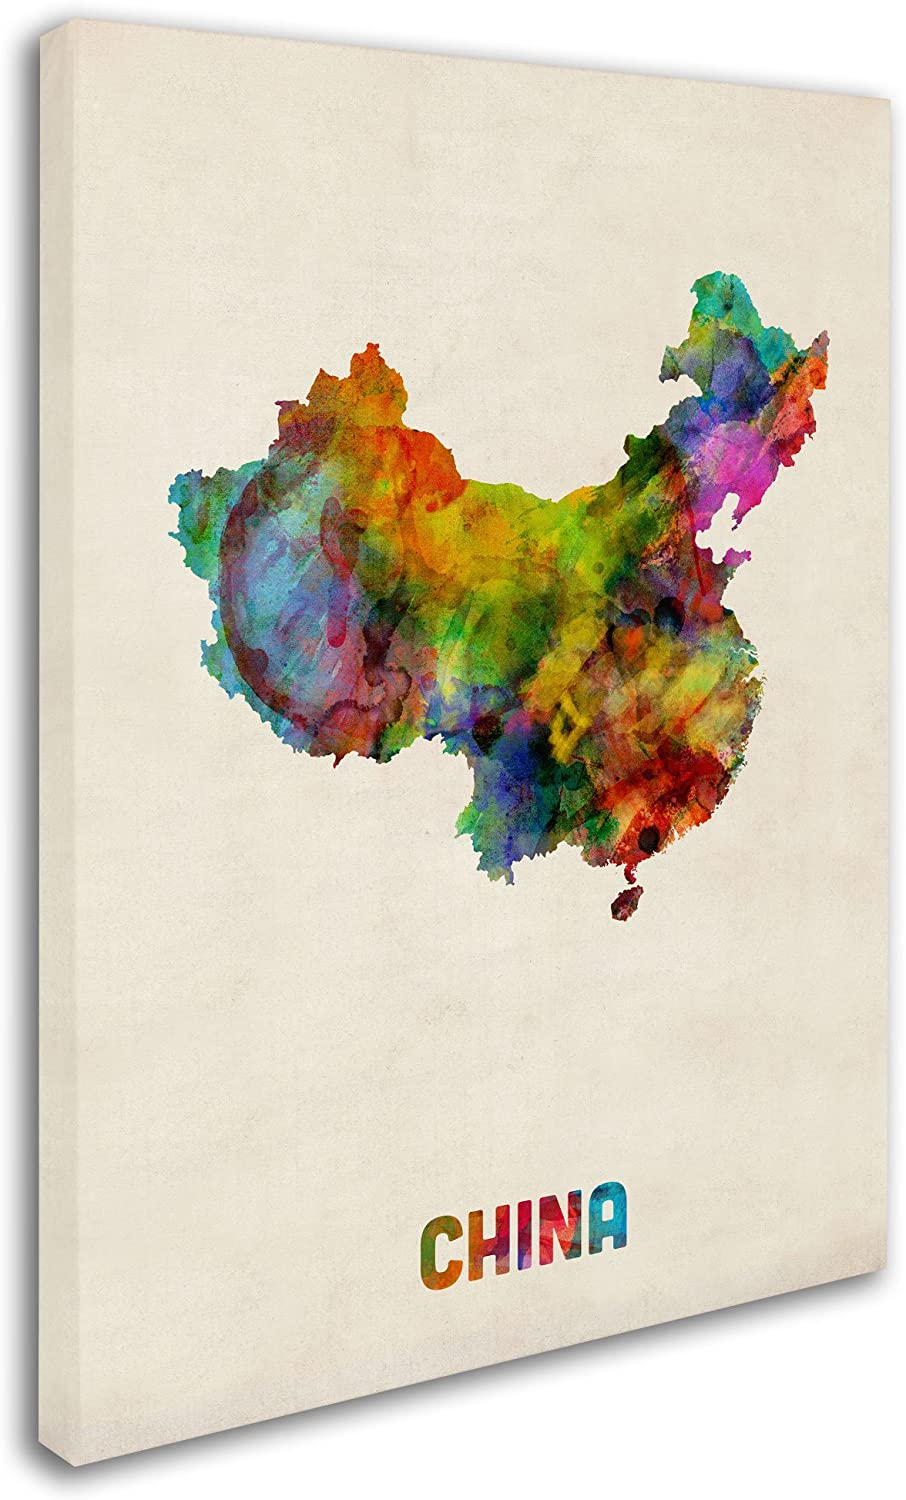 China Watercolor Map By Michael Tompsett 18x24 Inch Canvas Wall Art Posters Prints Amazon Com